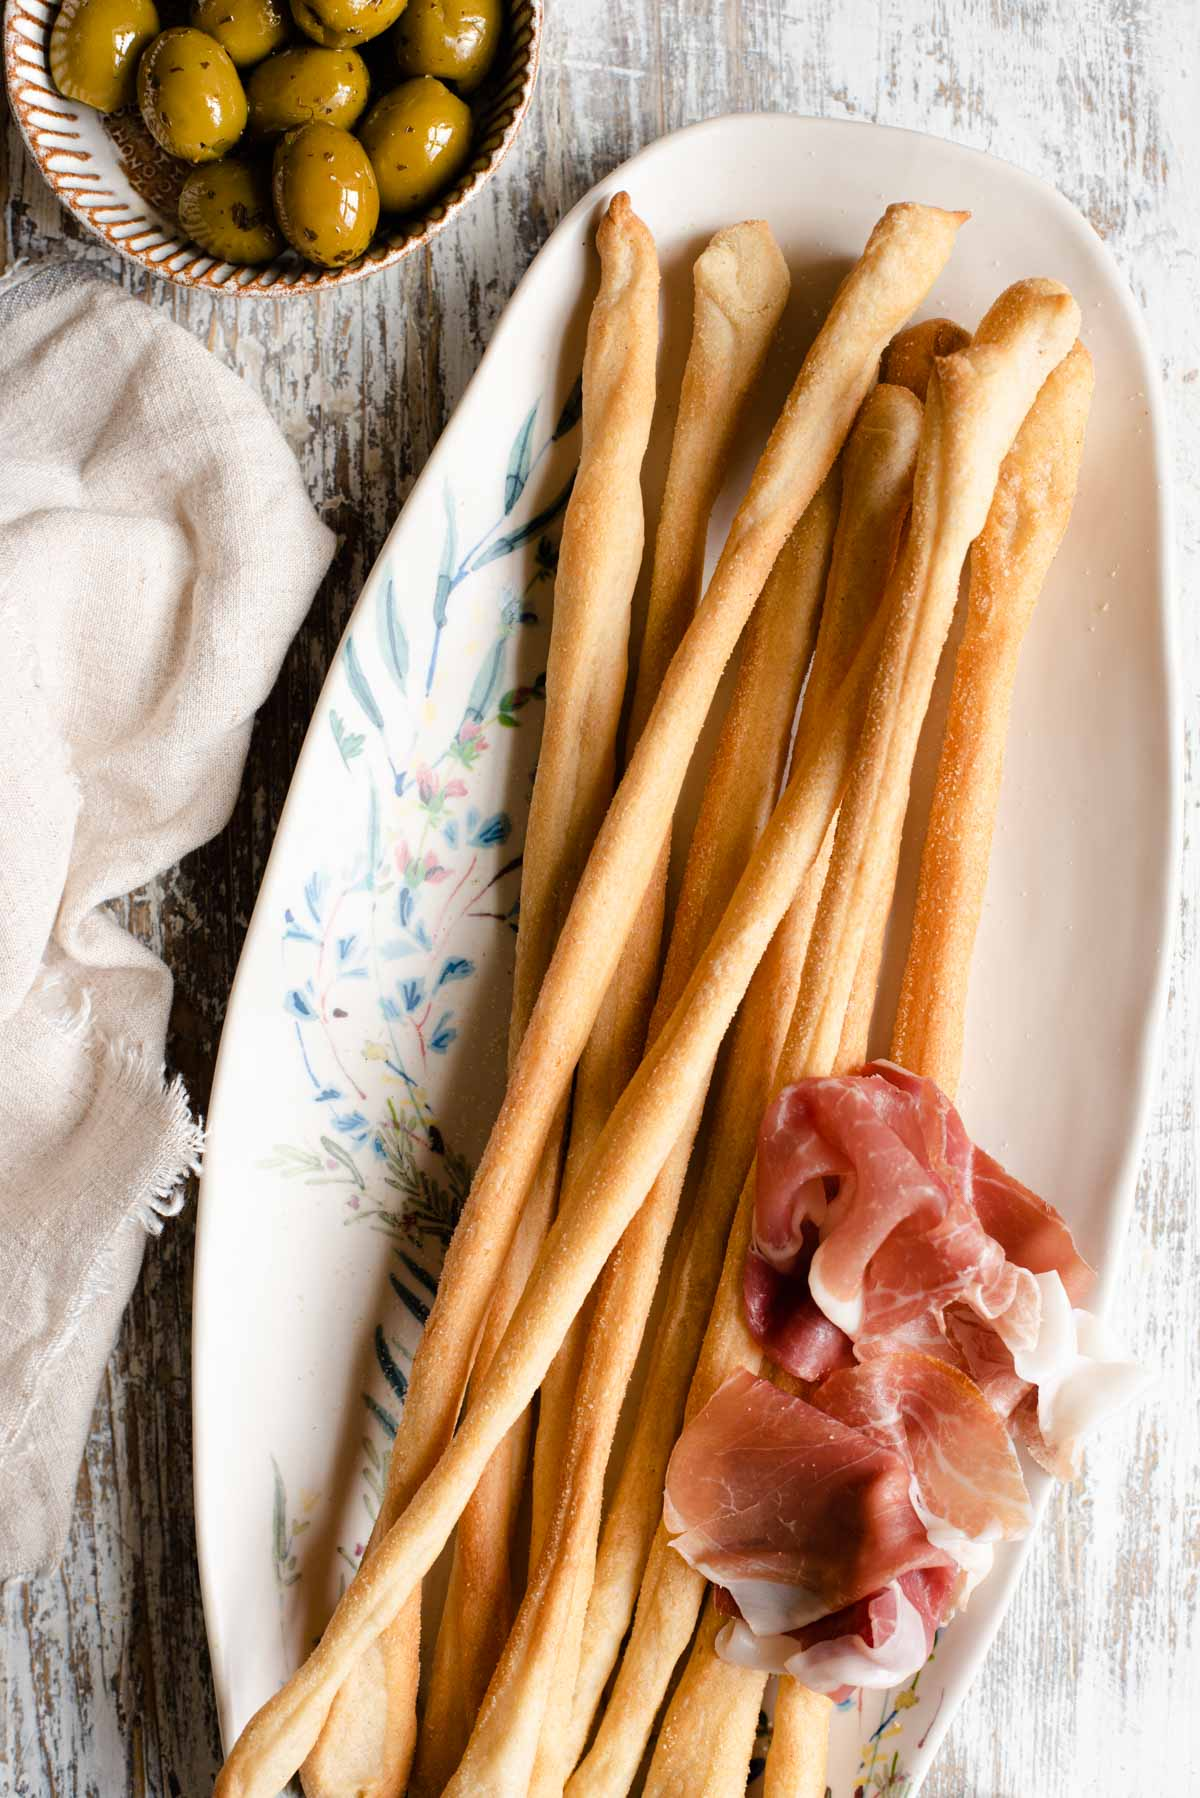 An overhead shot of Italian breadsticks on a serving plate with olives and prosciutto